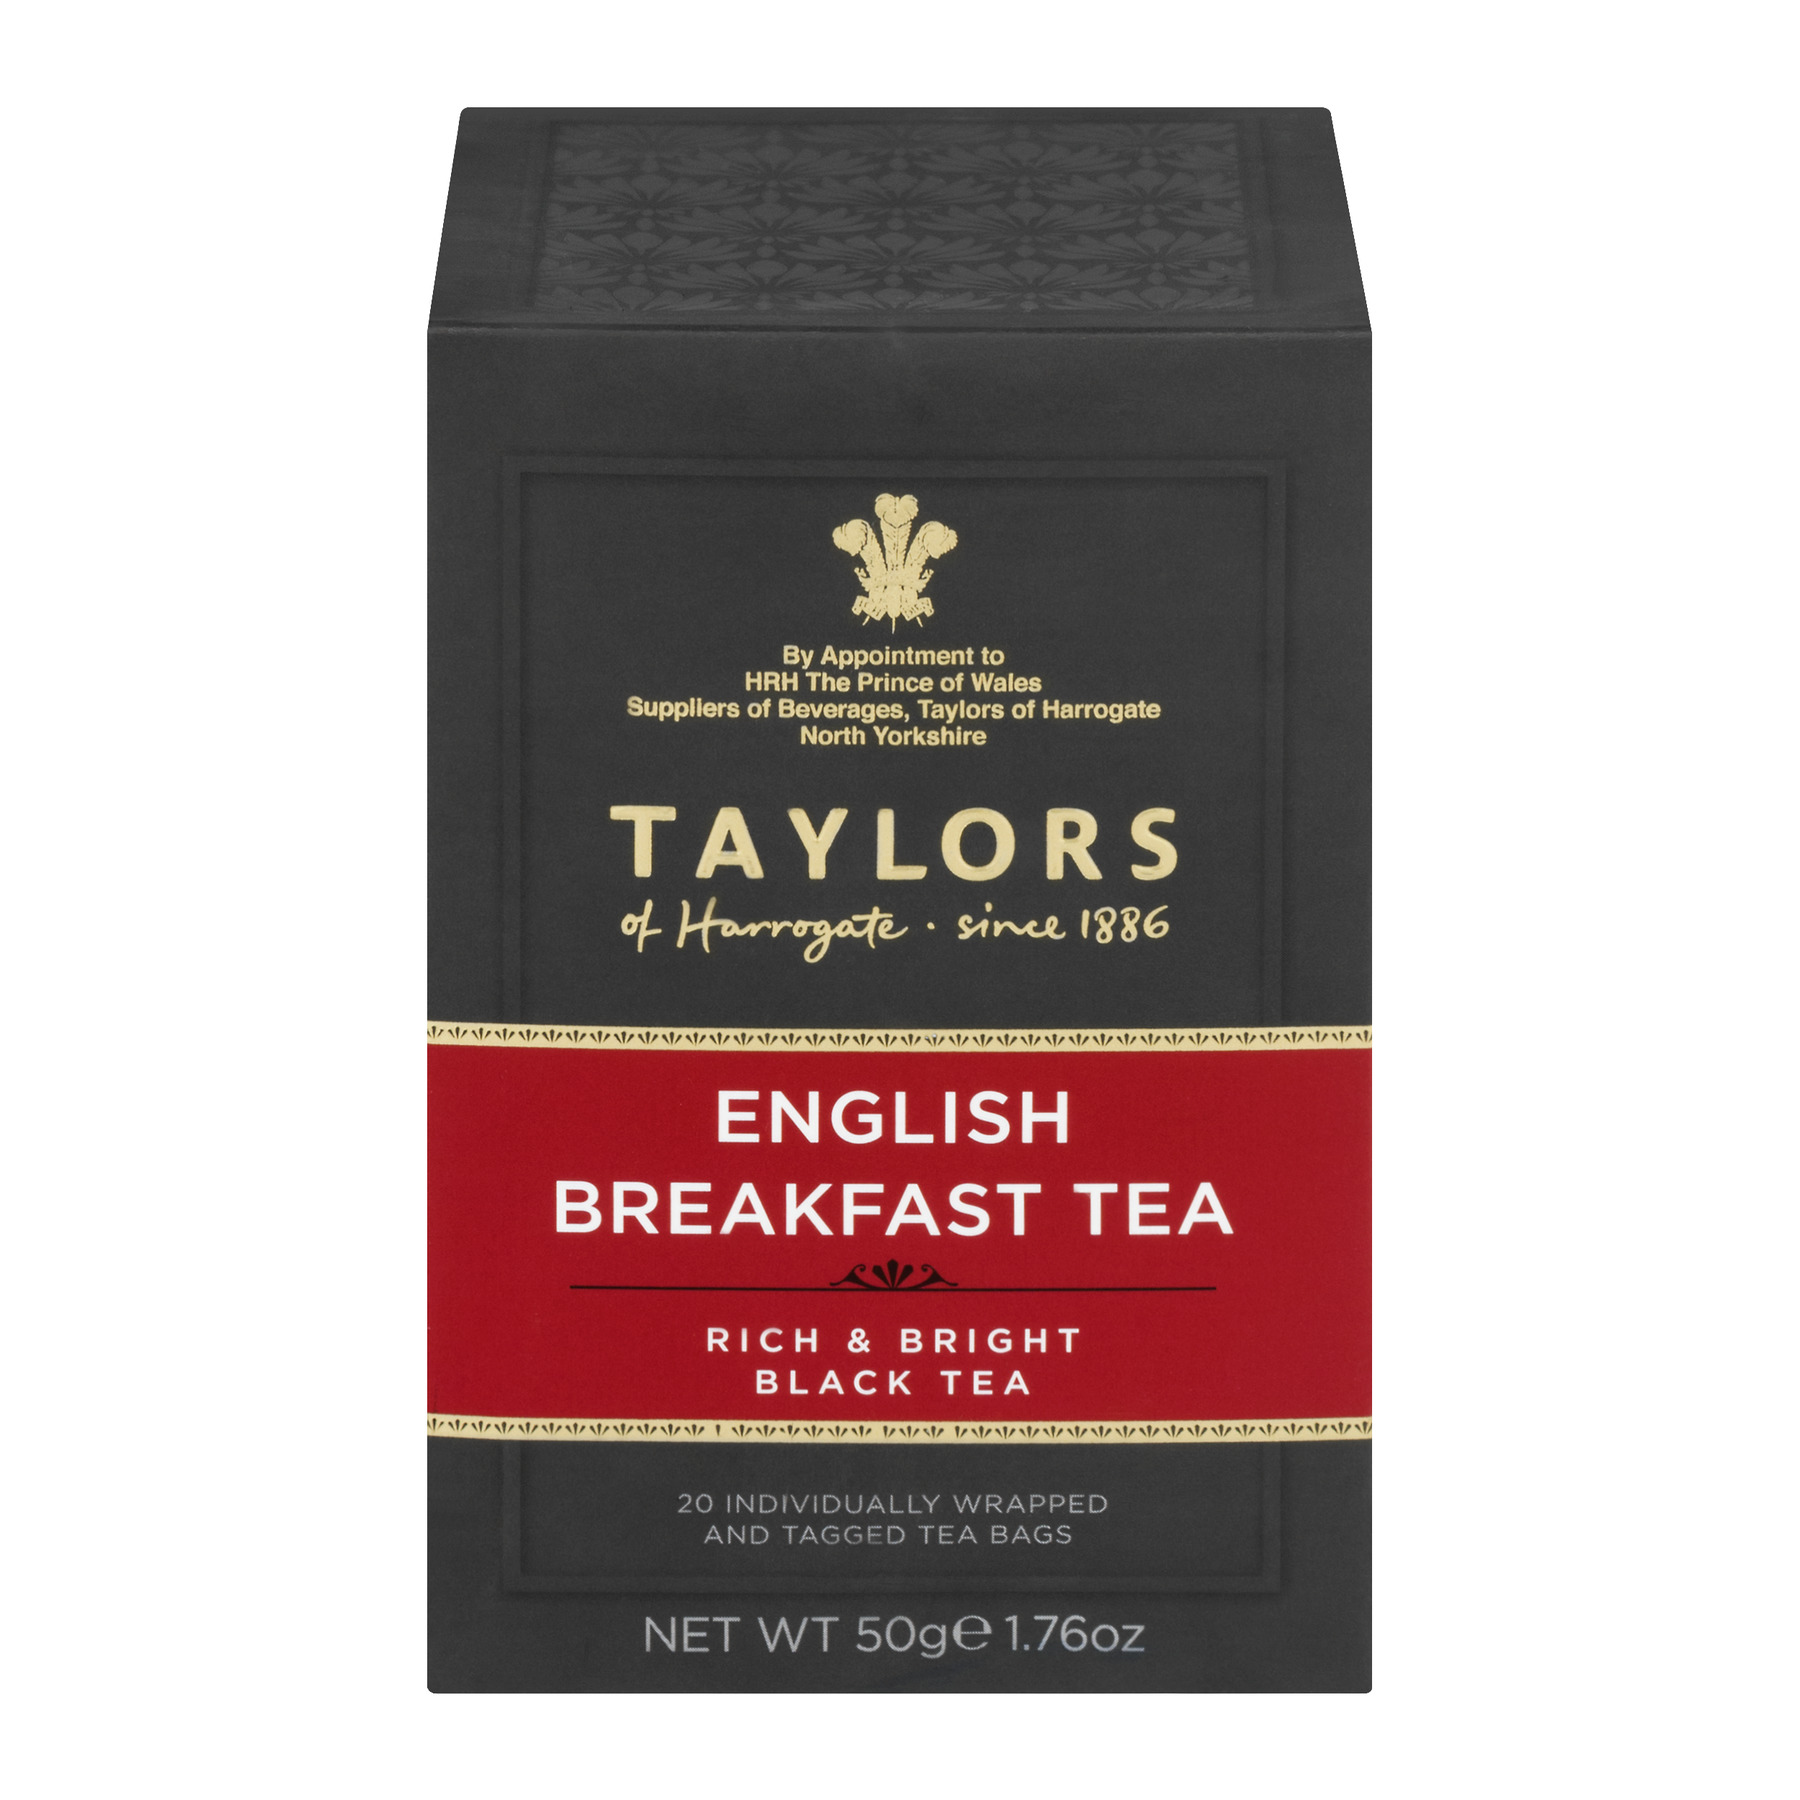 Taylors Of Harrogate English Breakfast Black Tea - 20 CT20.0 CT